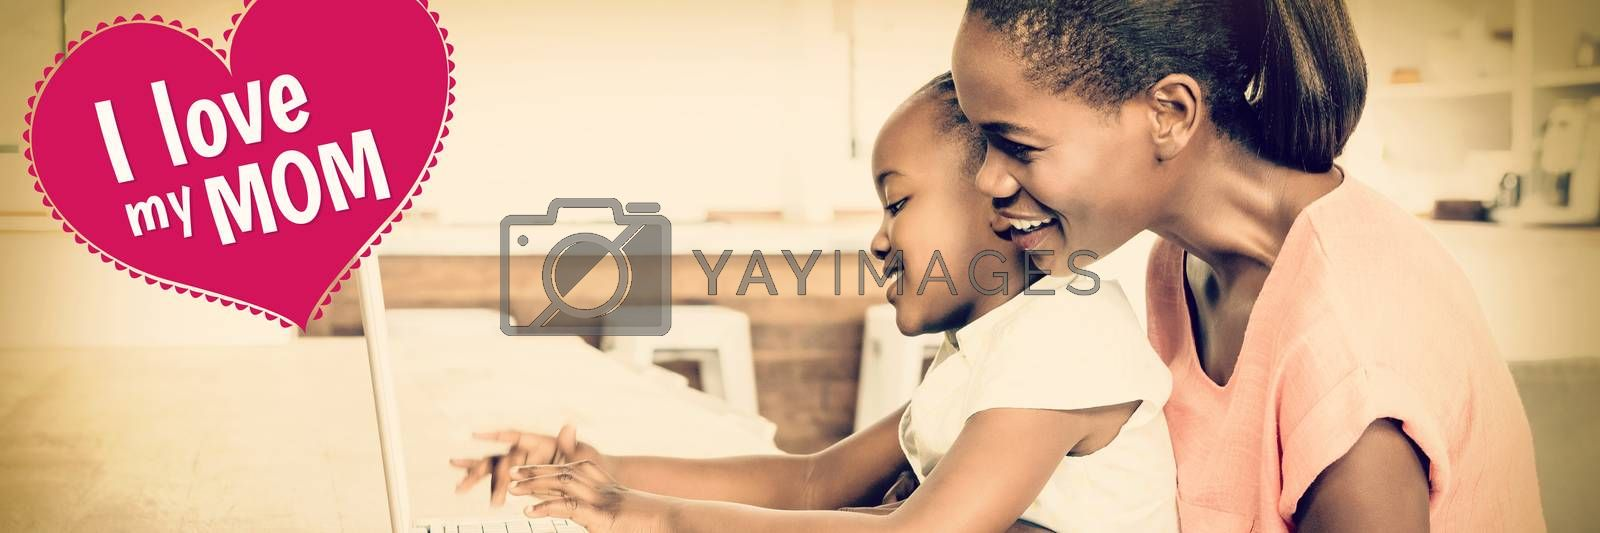 mothers day greeting against side view of daughter using laptop at desk with mother